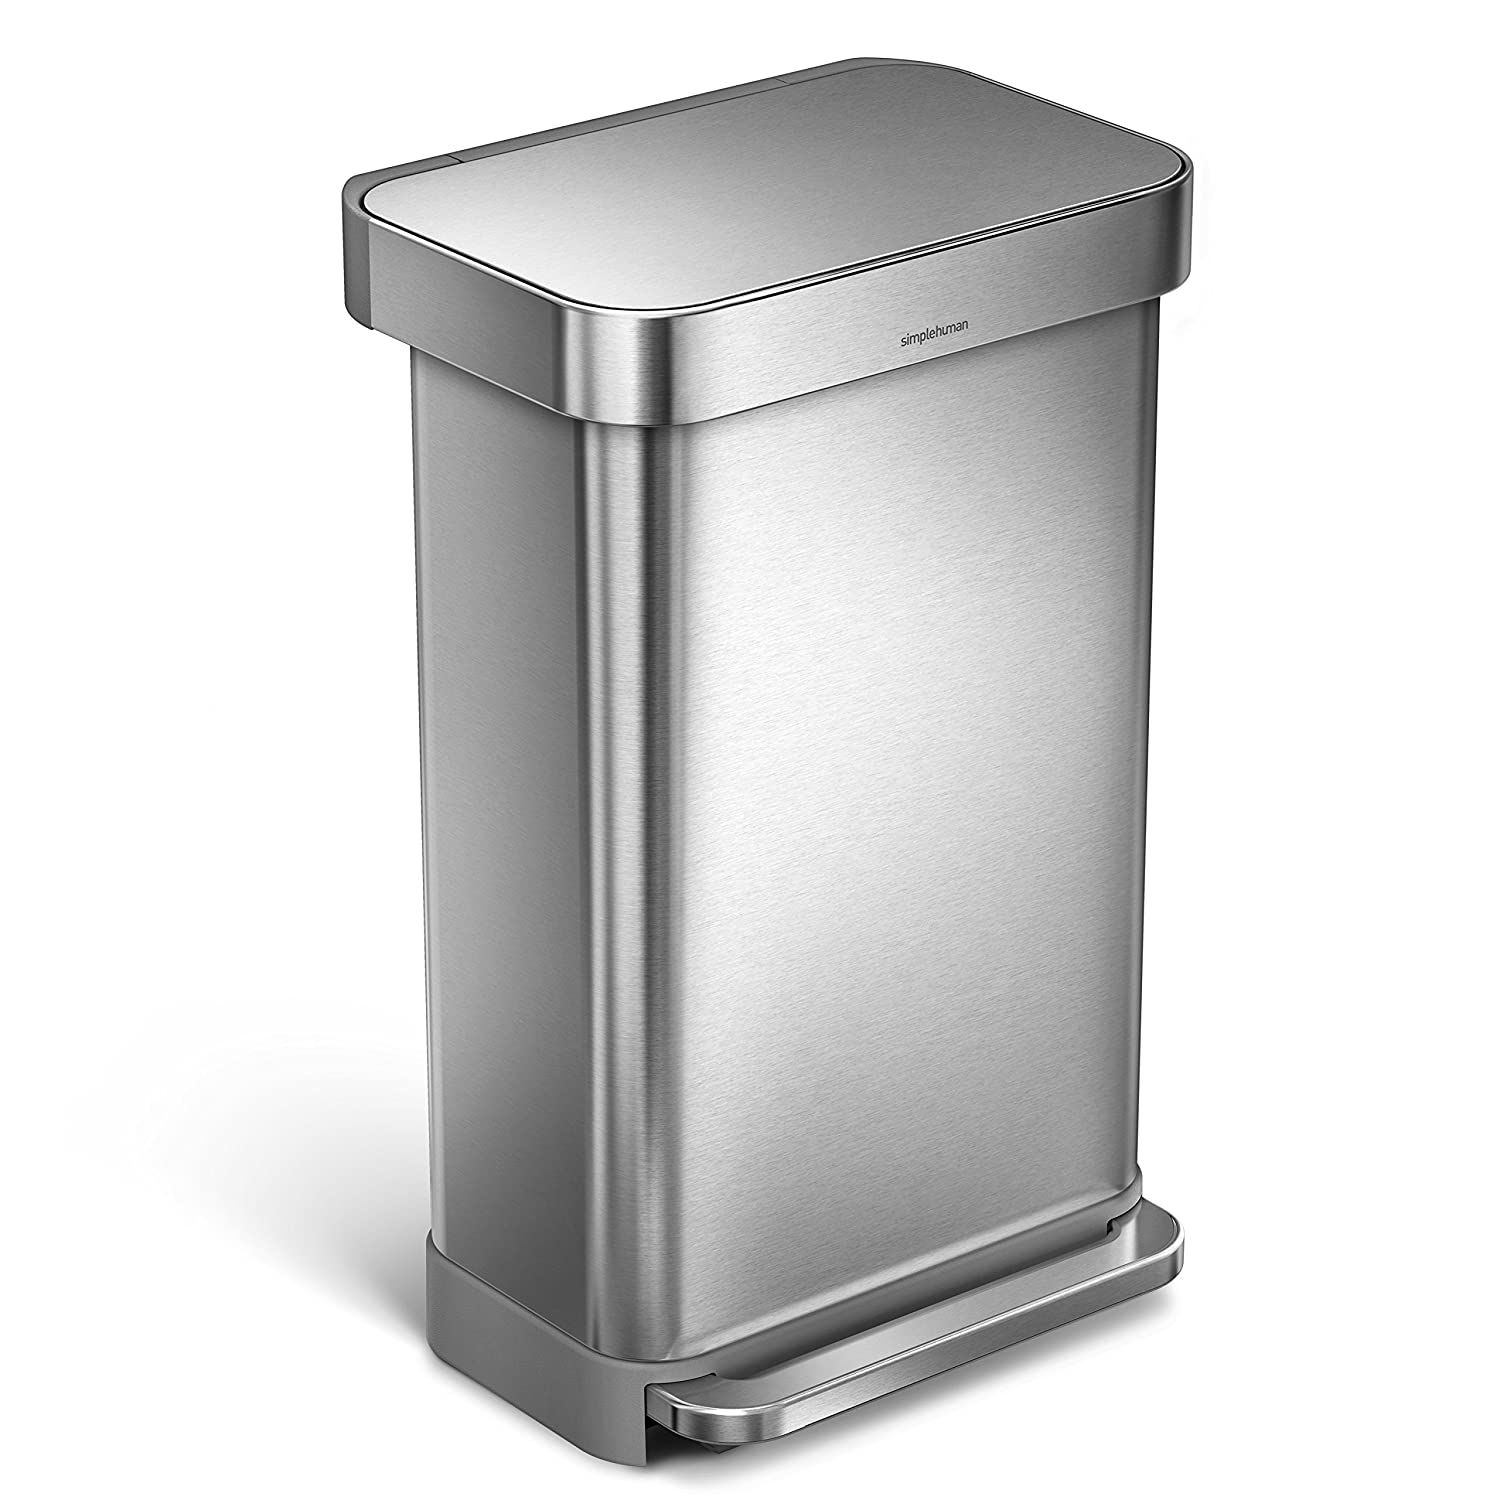 Simplehuman Rectangular Step Trash Can with Liner Pocket Review